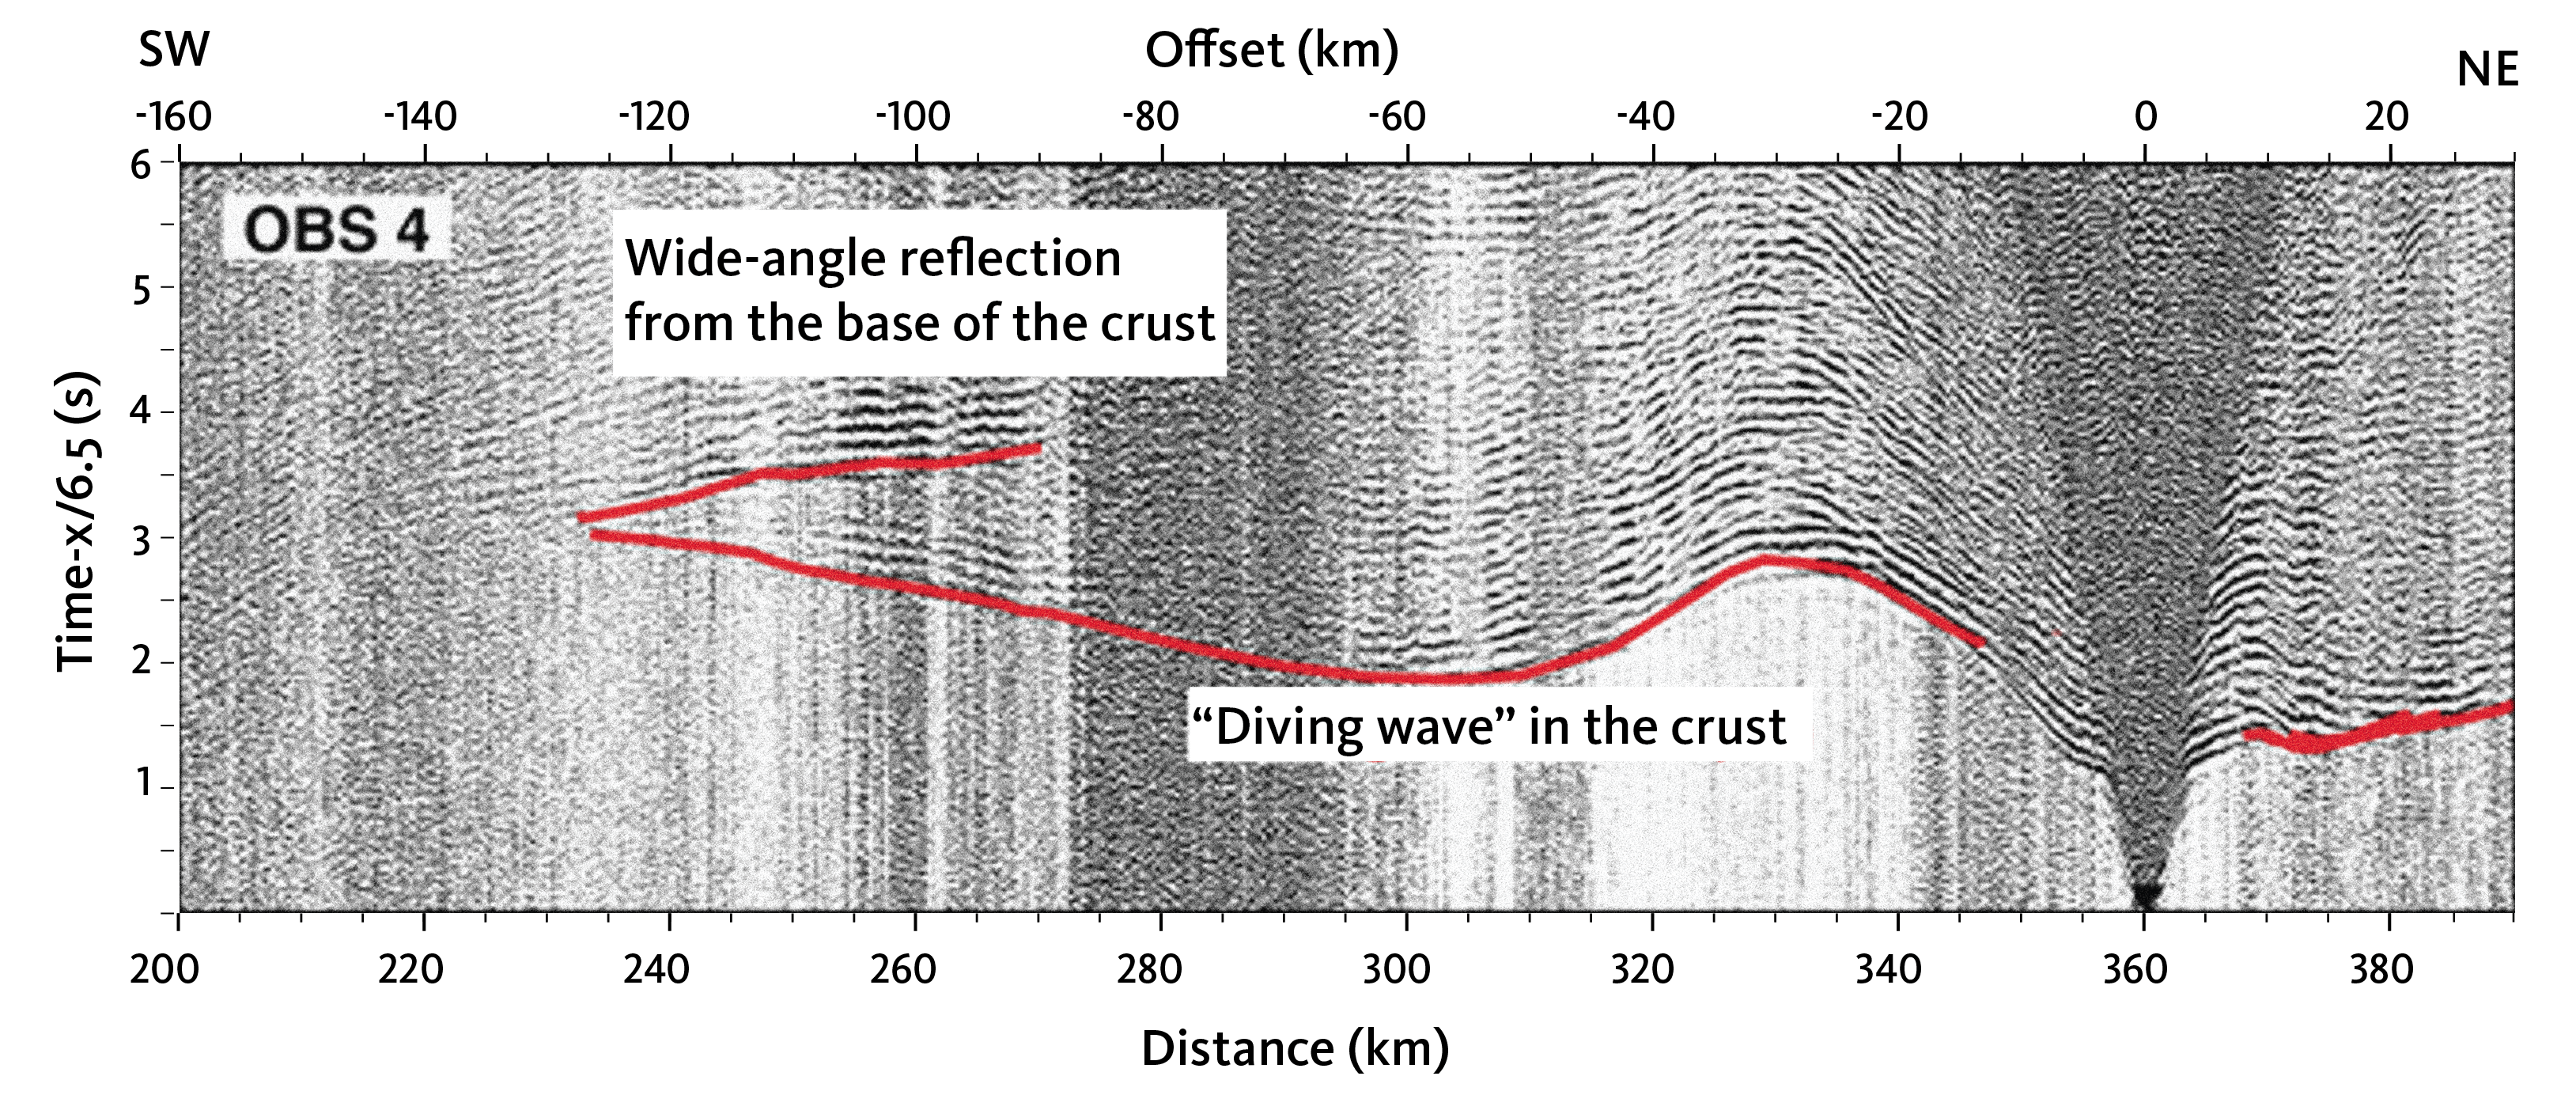 Diving waves in the crust